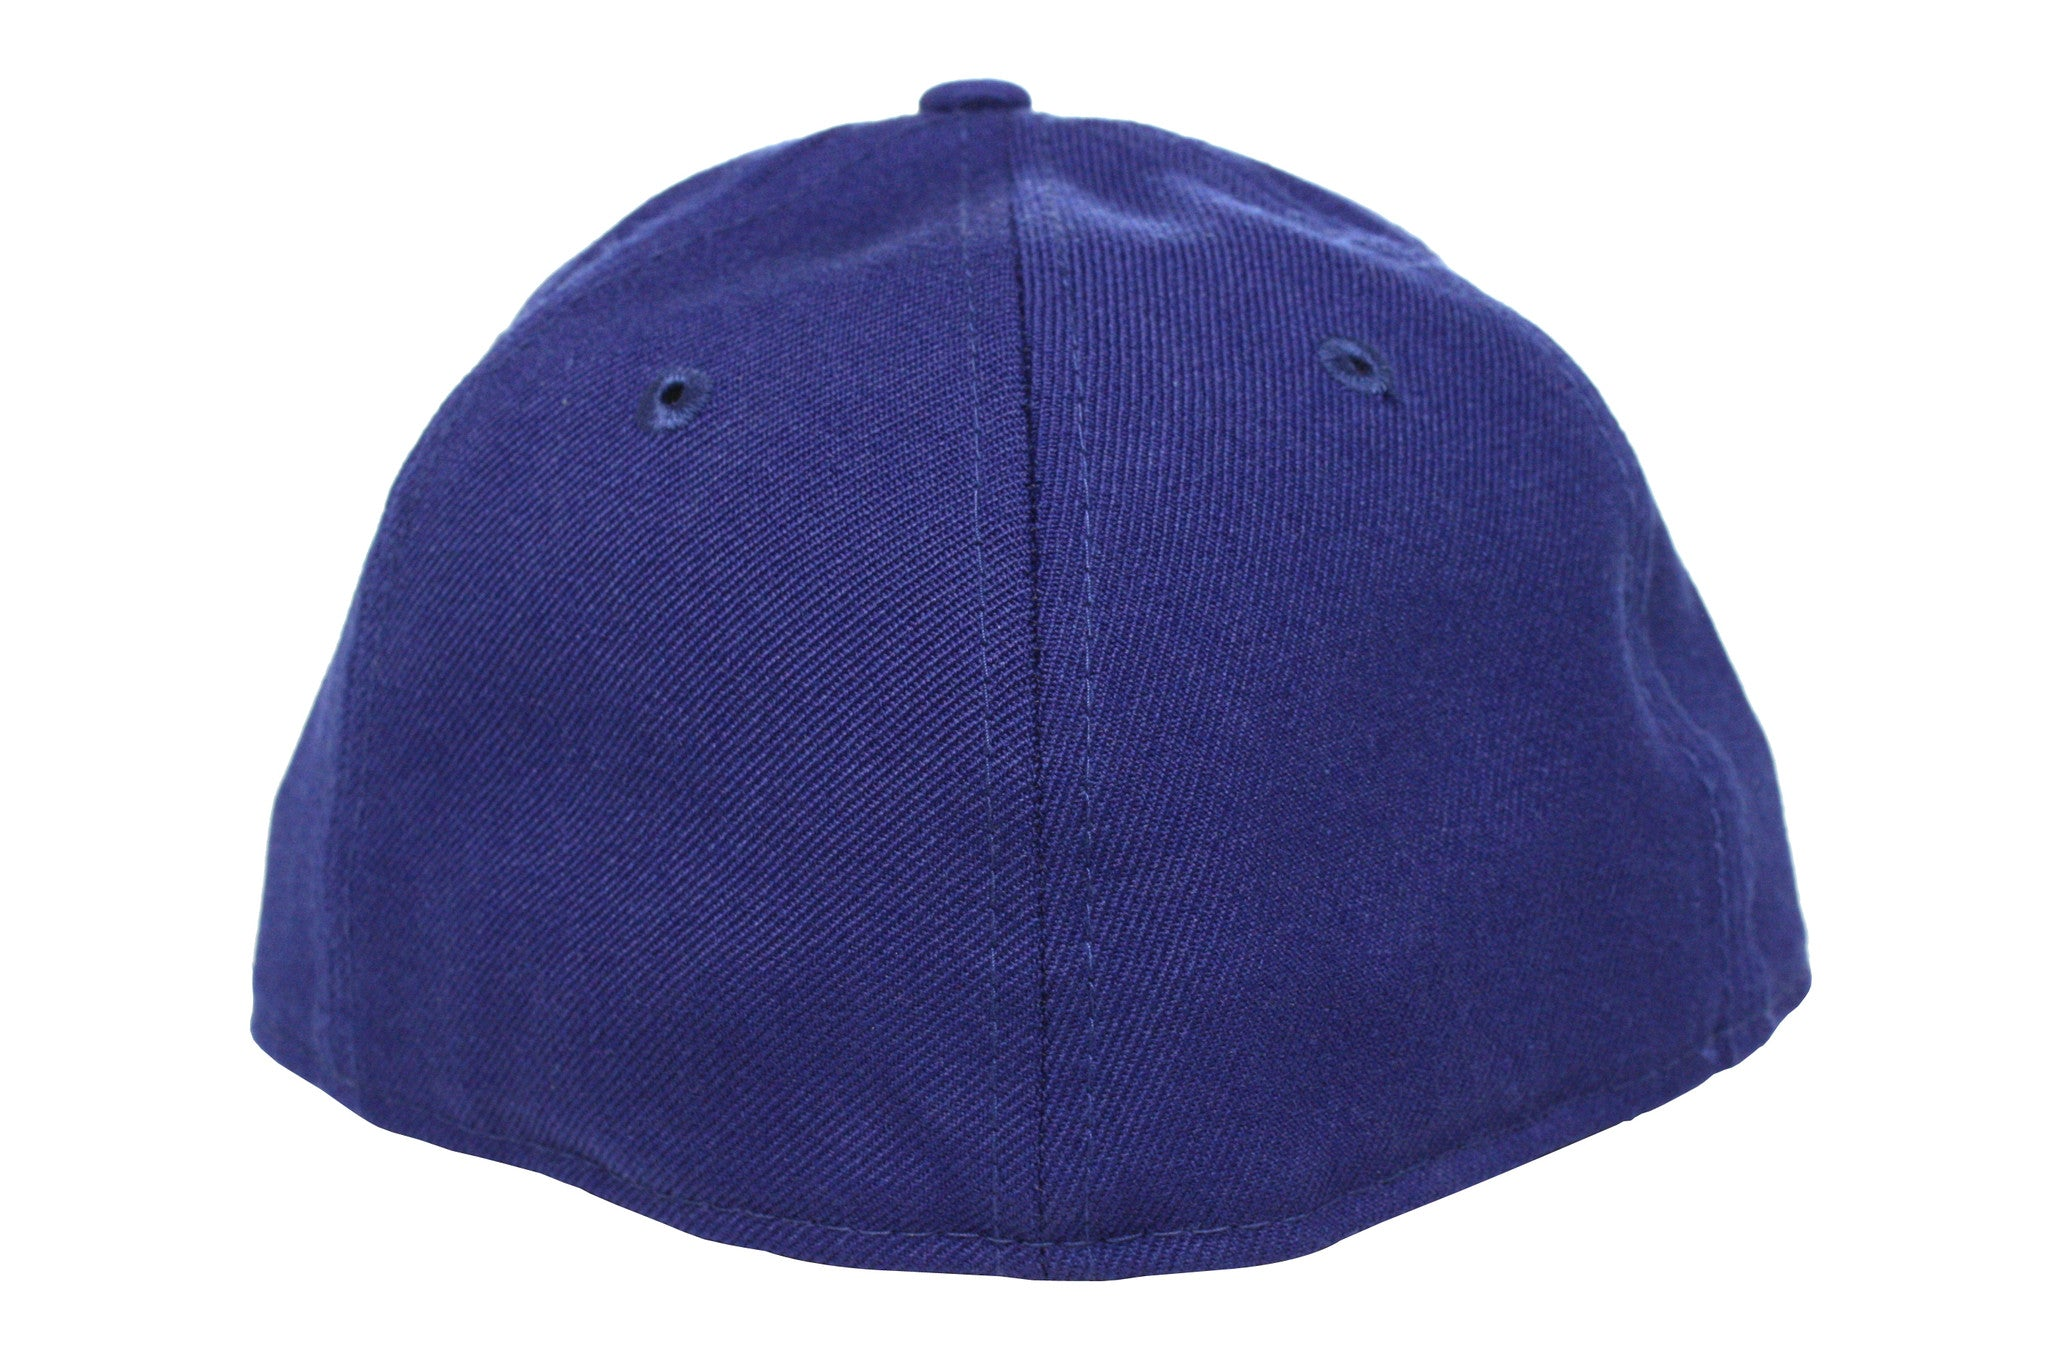 221a421994d00 New Era 5950 1987-1992 Seattle Mariners Retro Fitted Hat - www ...